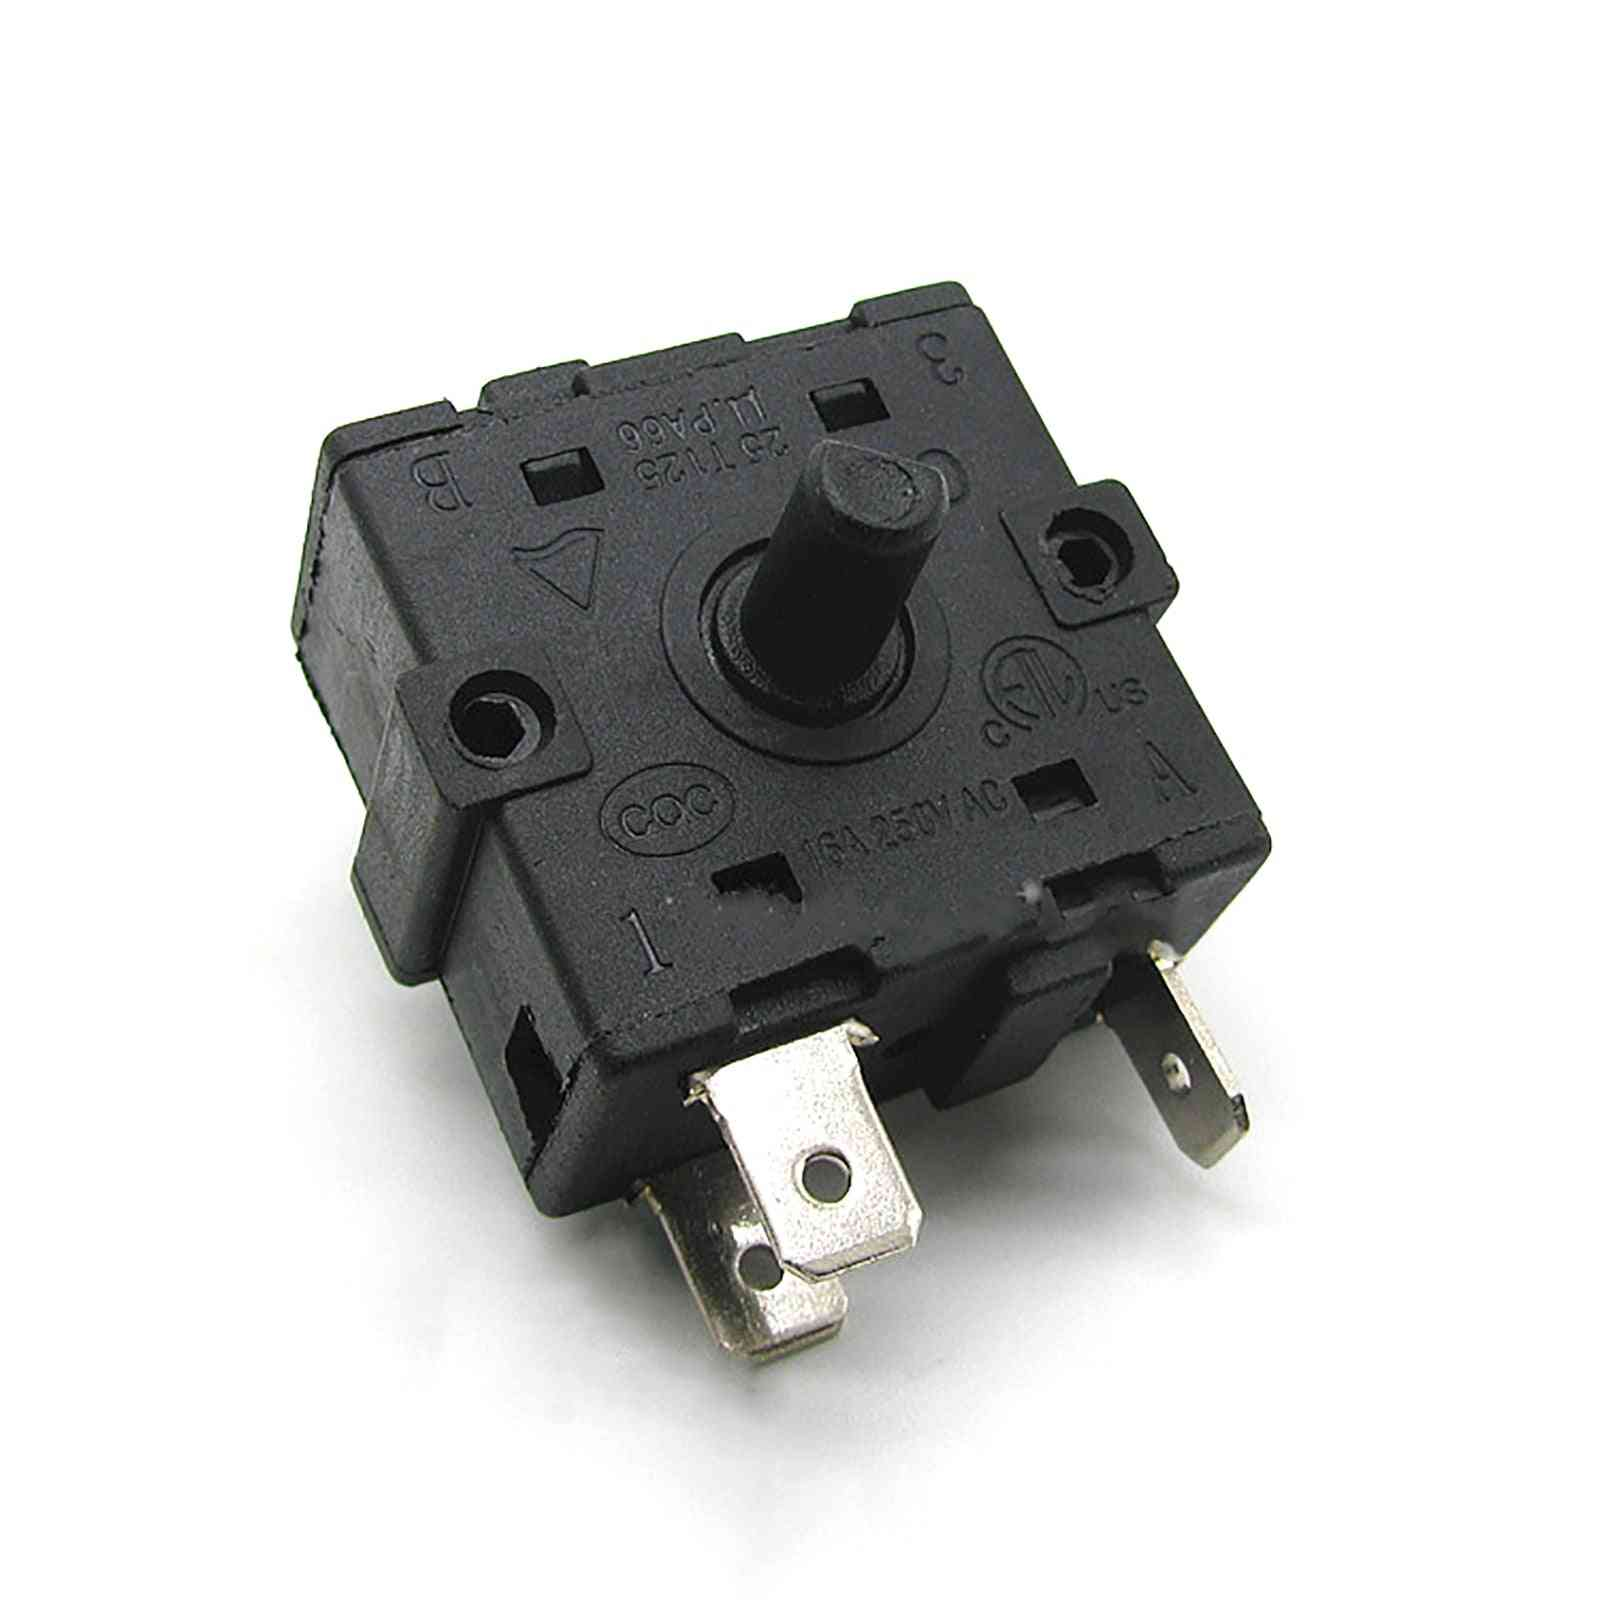 Rotary Switch Ac Electric Heater Radiator Repair Parts Accessories